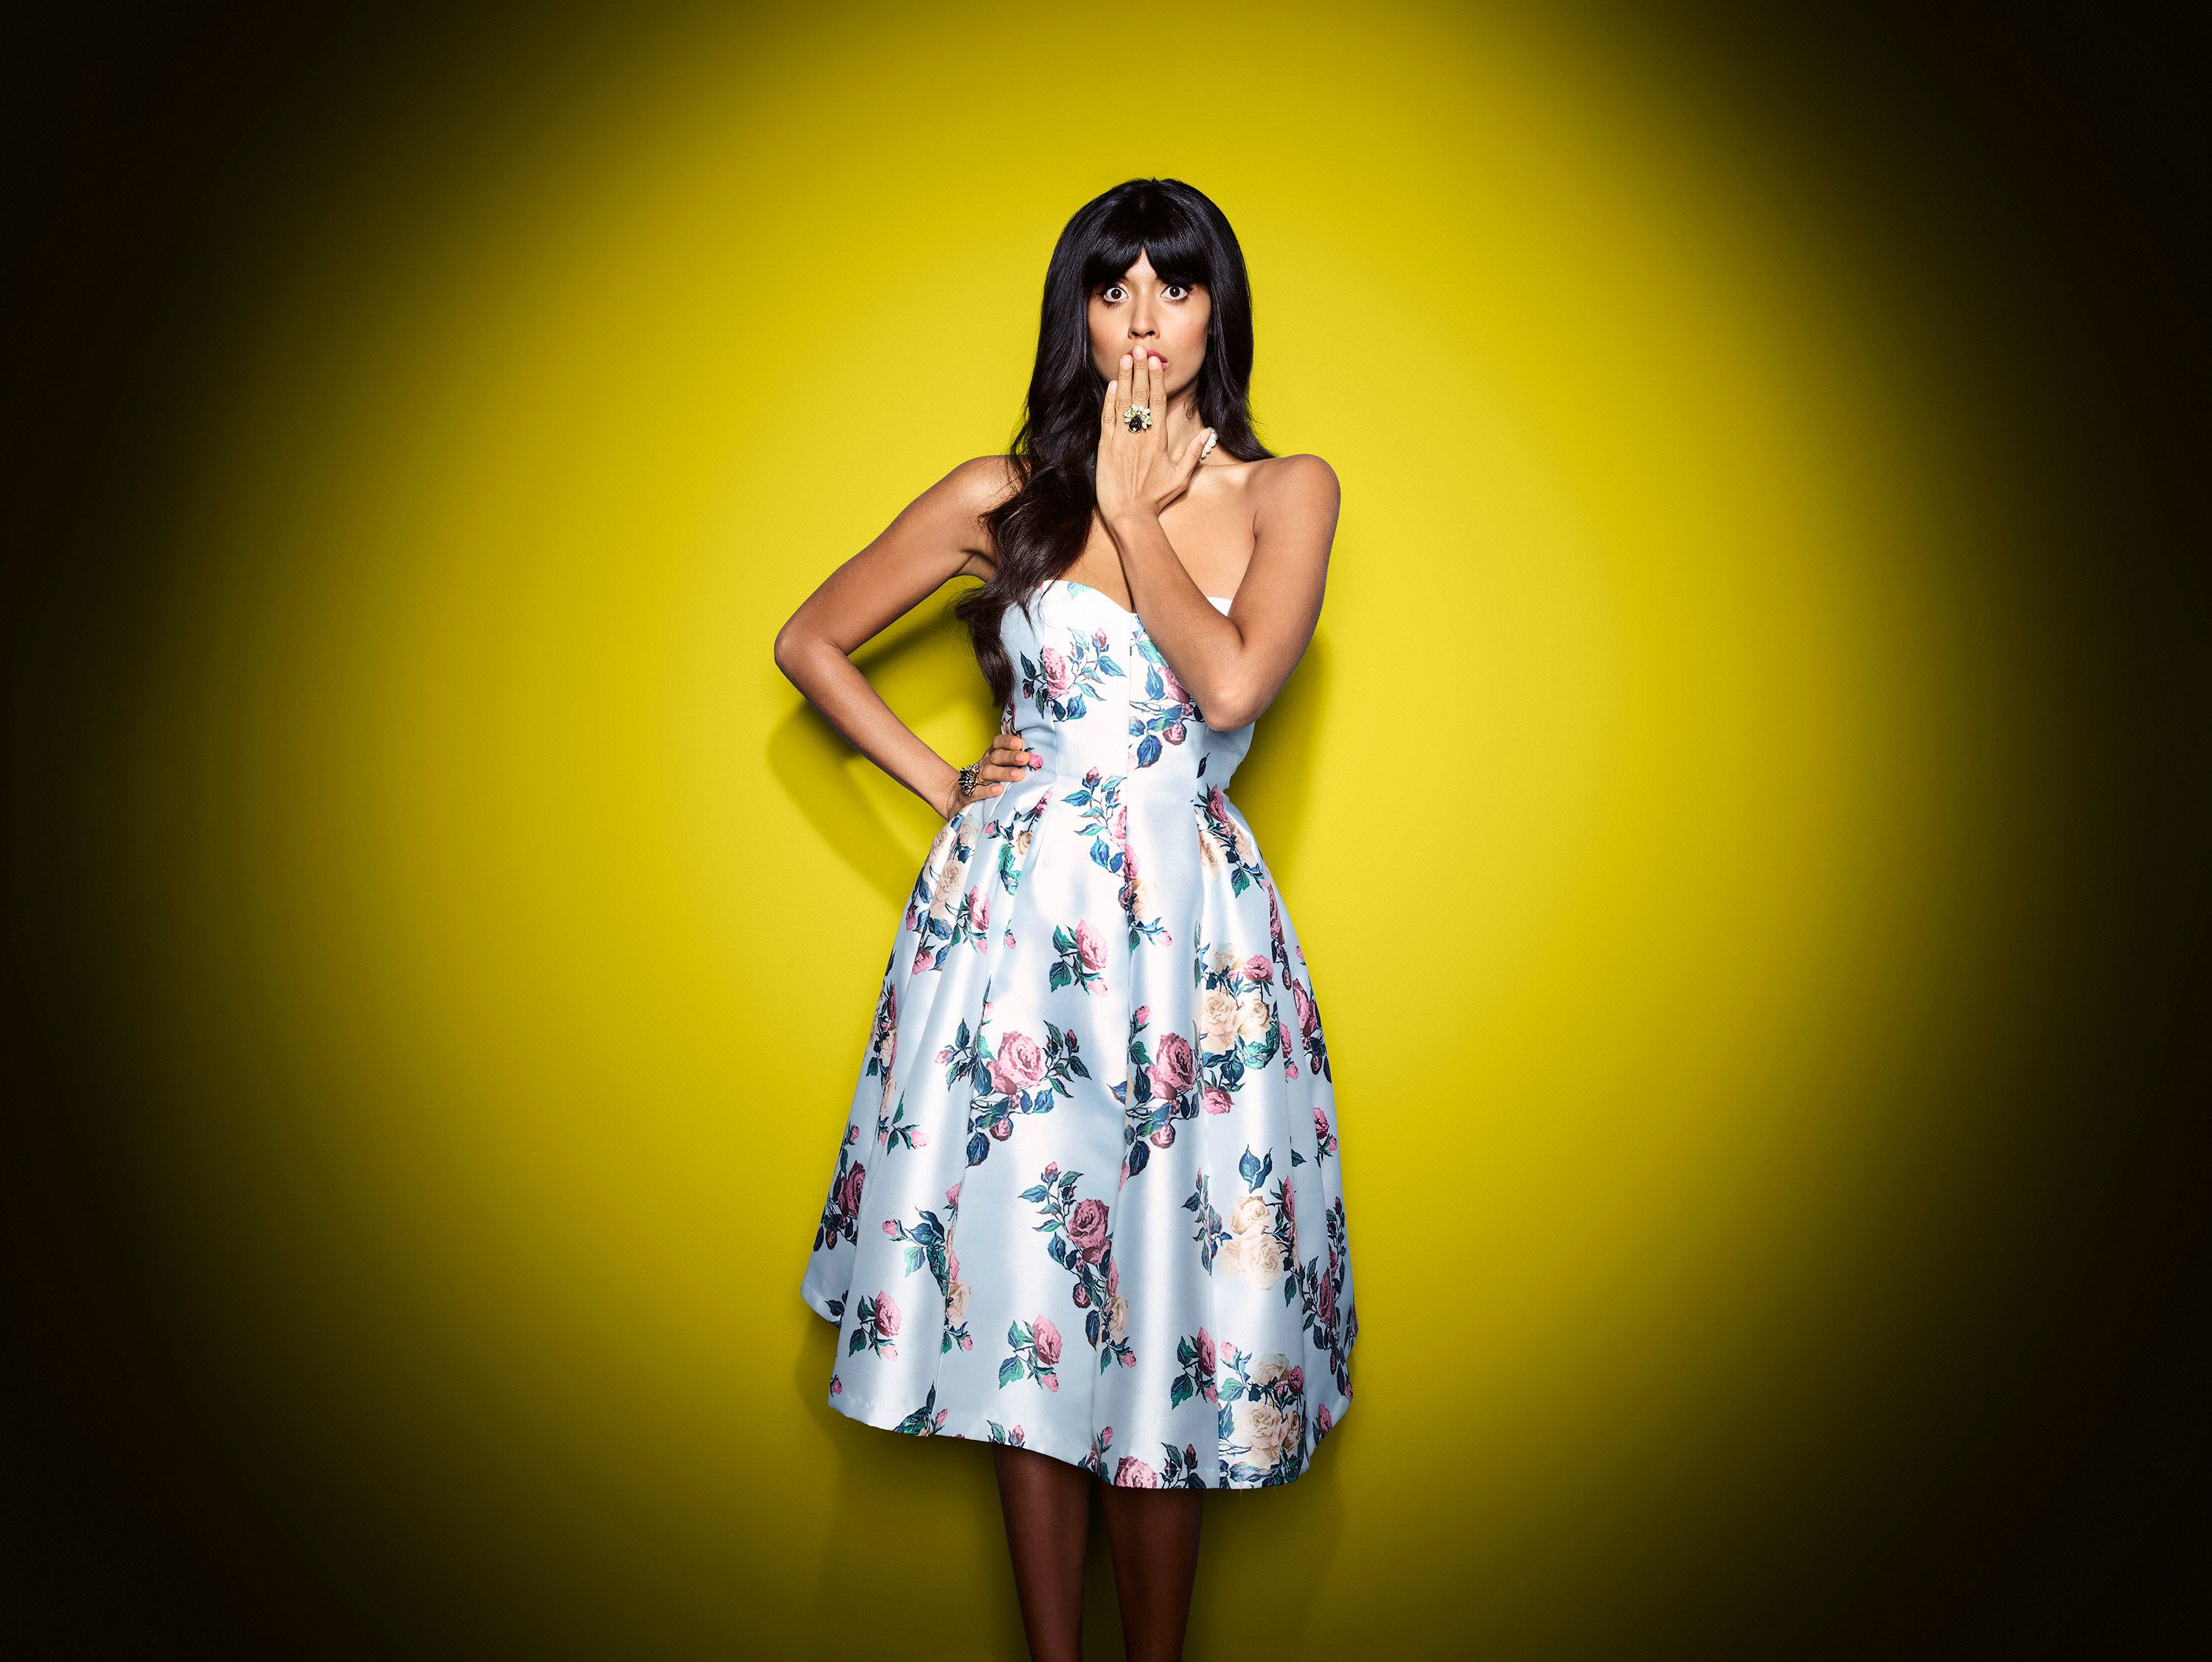 Jameela Jamil On That Kardashian Interview And Why Haters Can 'F**k Off And Get In A